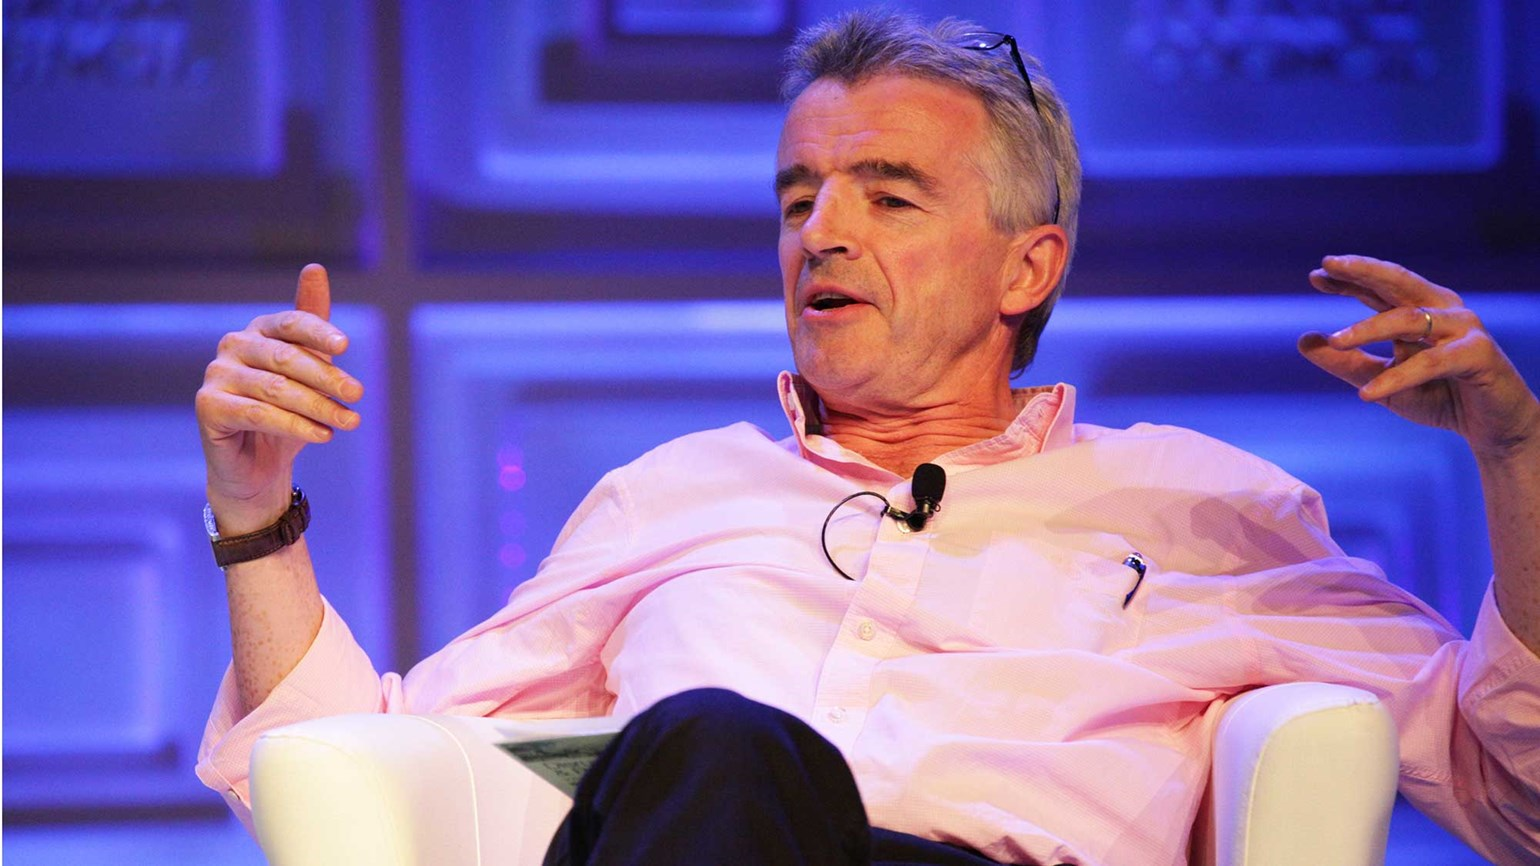 Ryanair's CEO, bad boy of aviation, sounds off